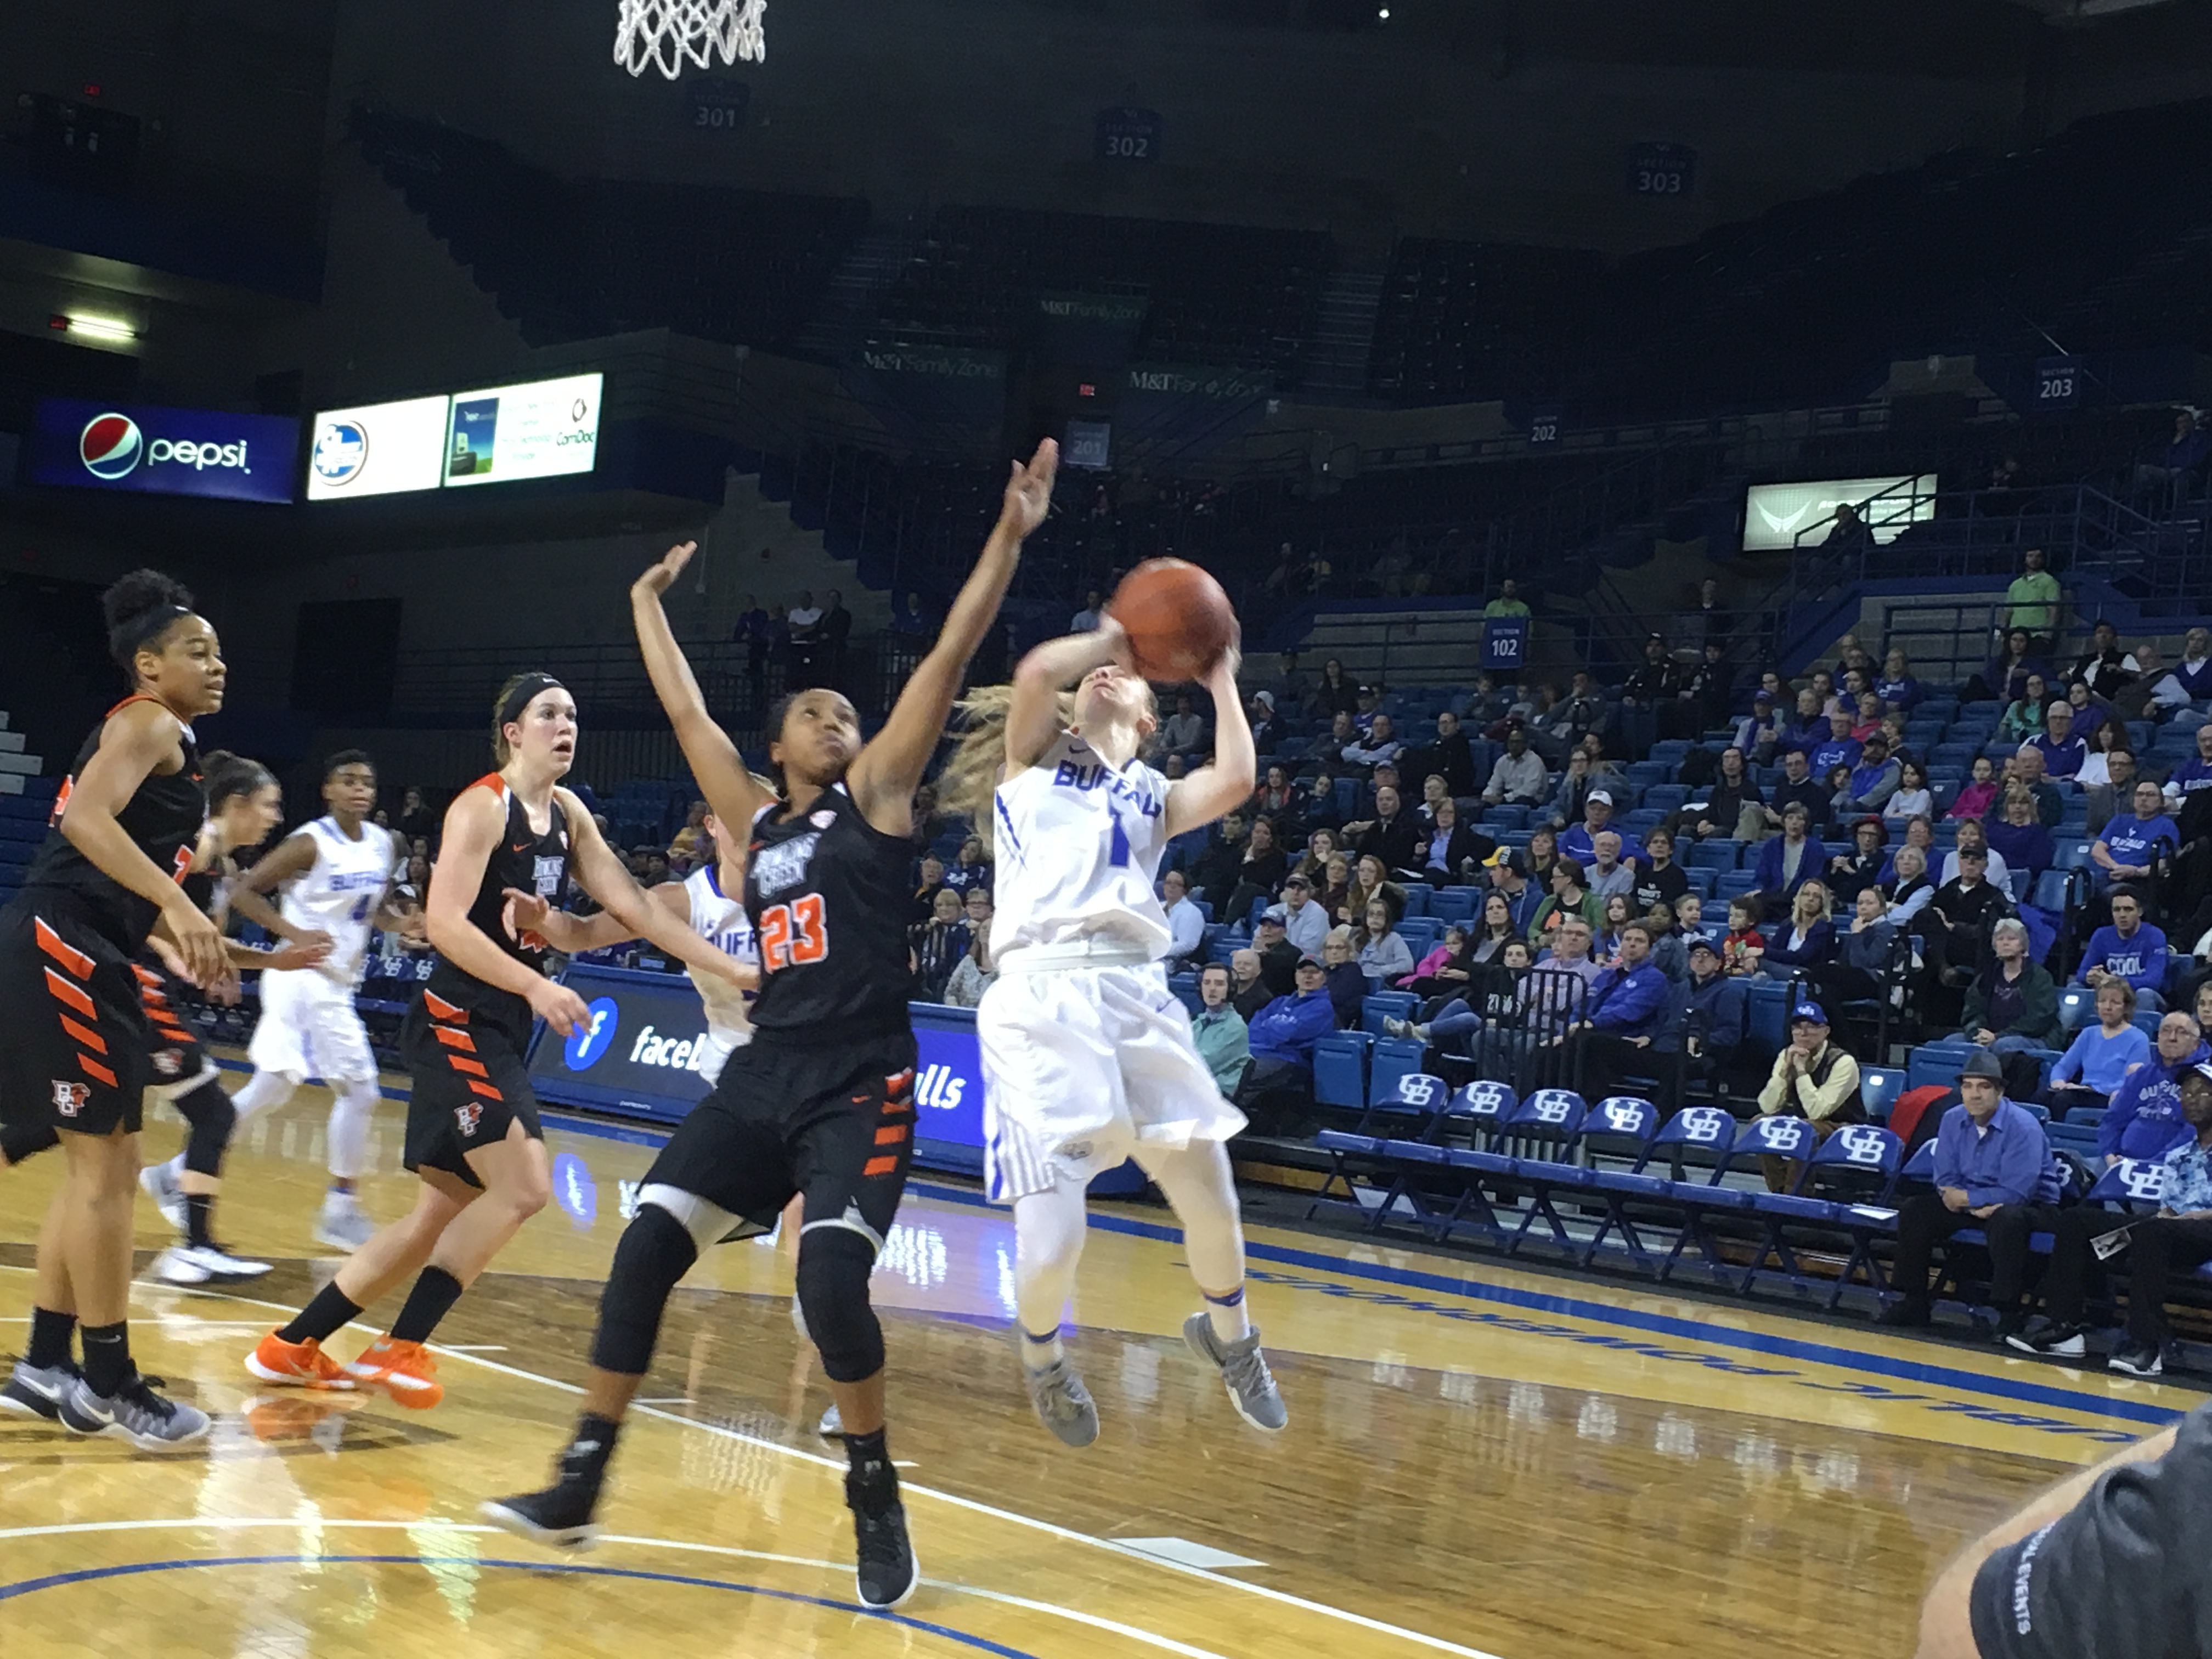 UB's Stephanie Reid drives, scores and gets fouled Monday vs. Bowling Green. (Buffalo News)